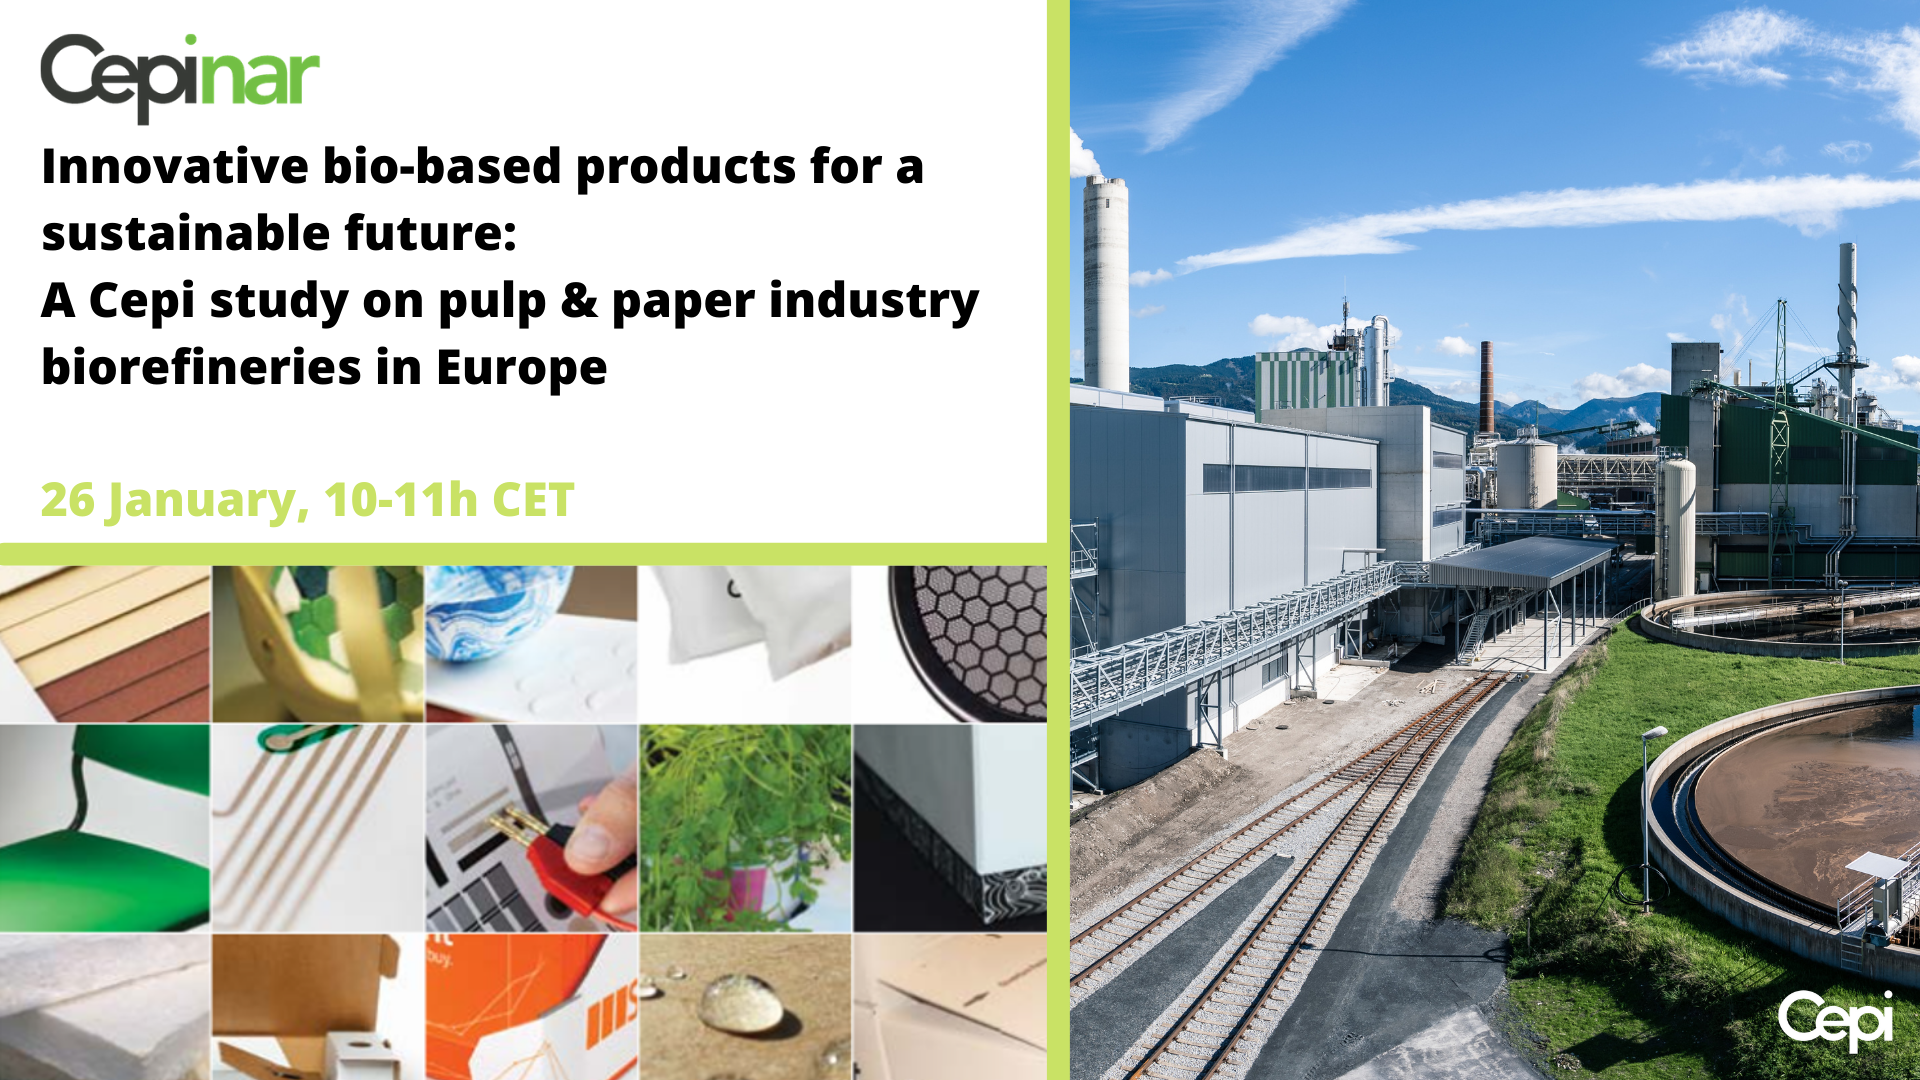 Innovative bio-based products for a sustainable future: A Cepi study on pulp & paper industry biorefineries in Europe